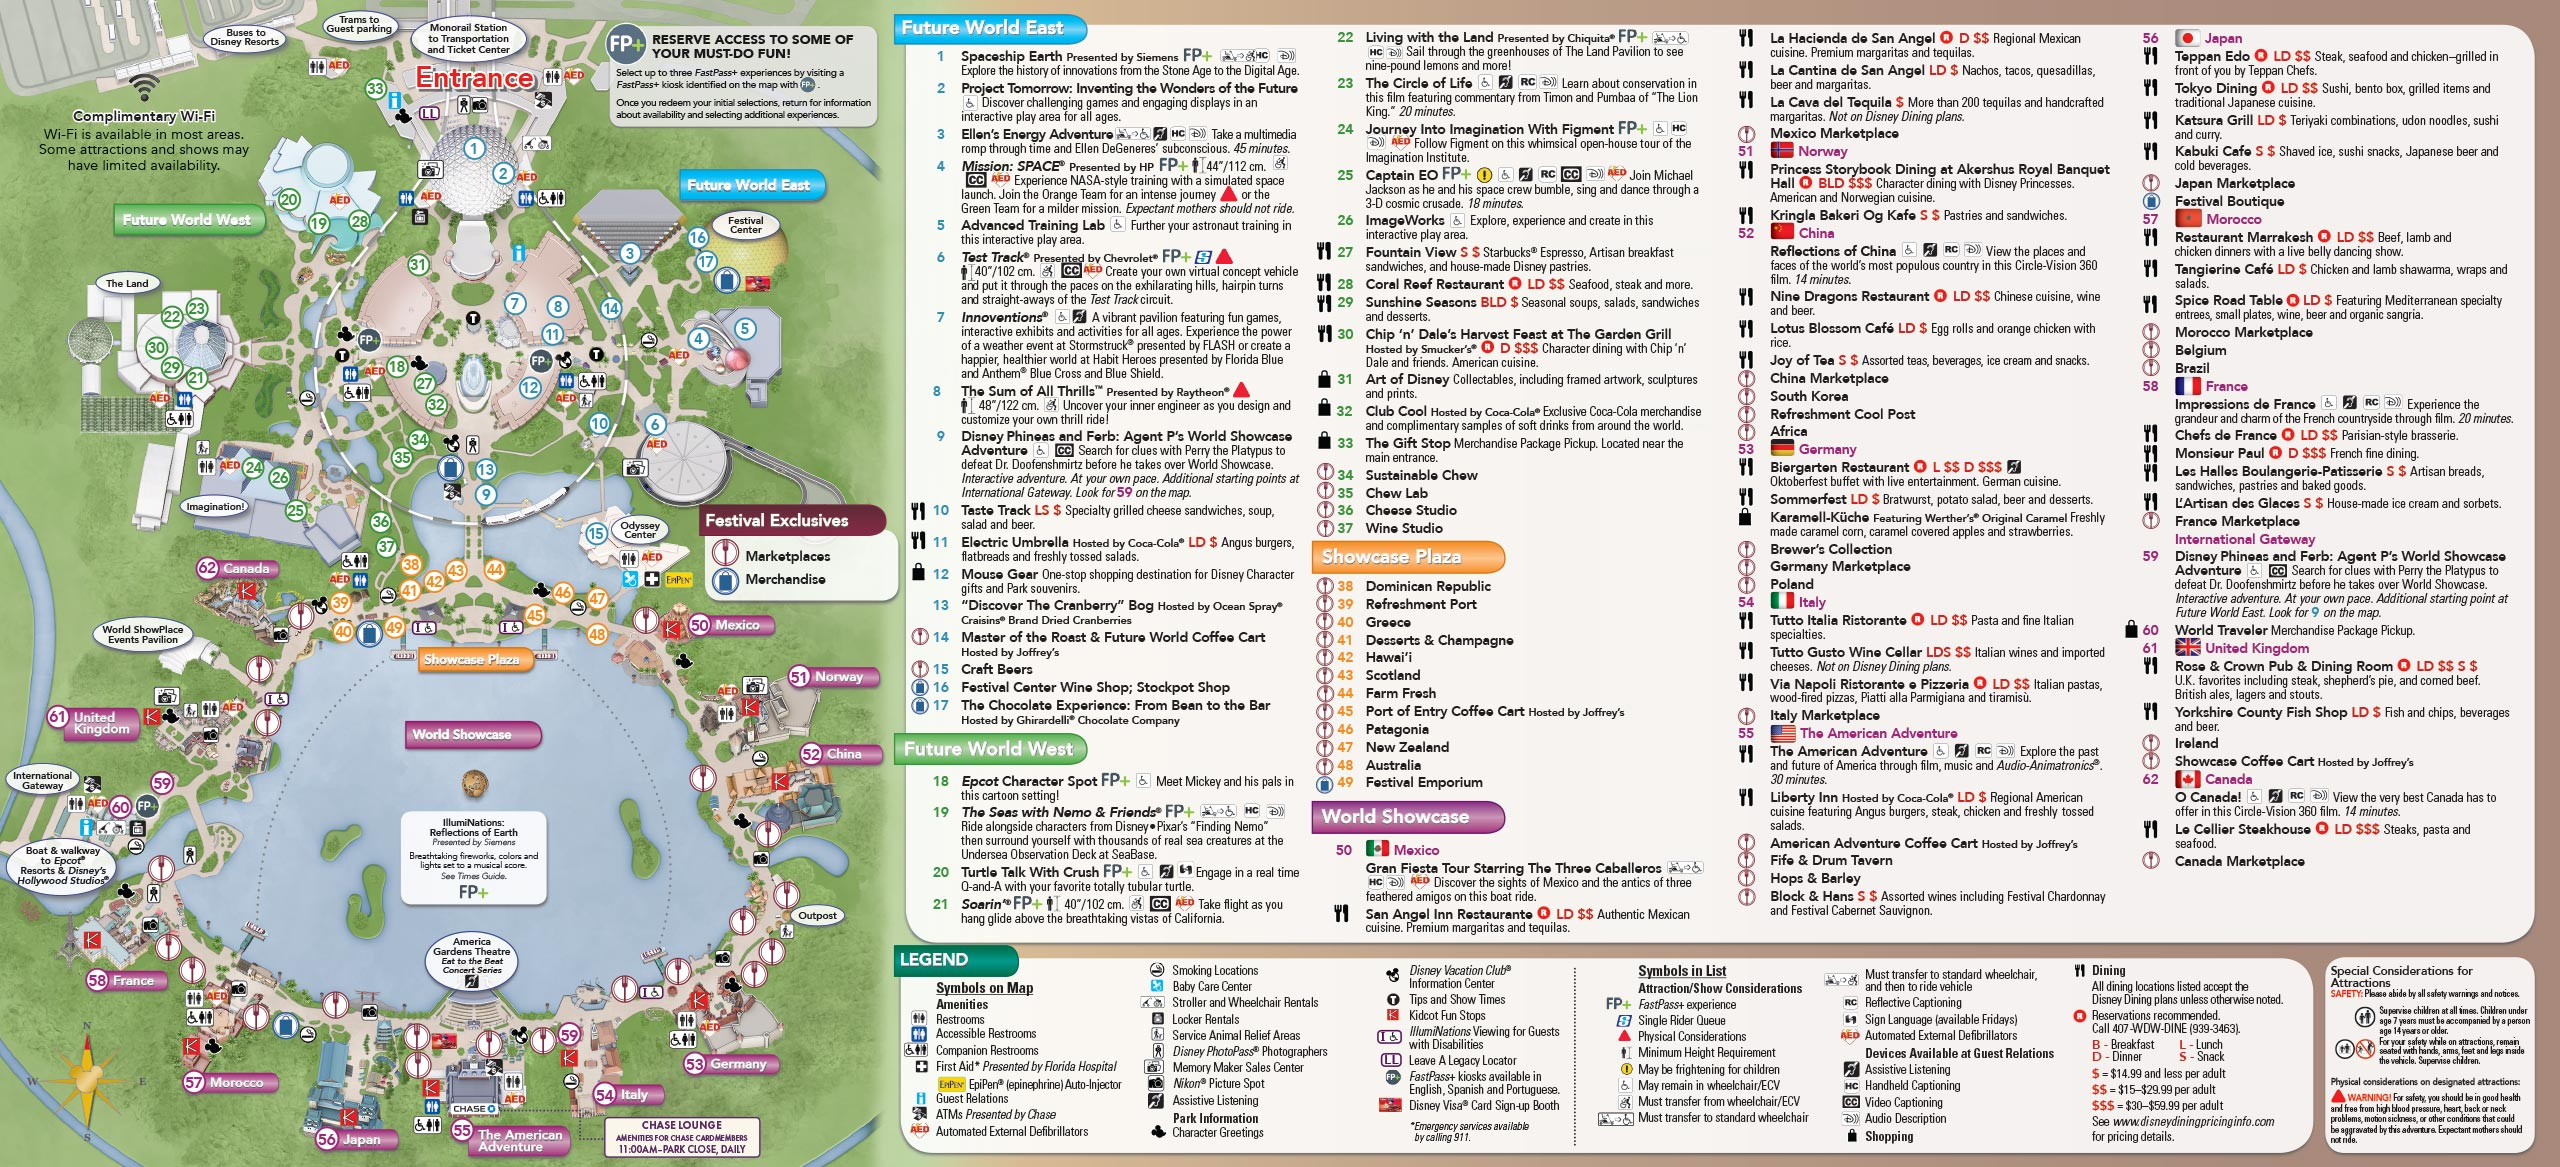 2015 Epcot International Food and Wine Festival Guide Map - Back